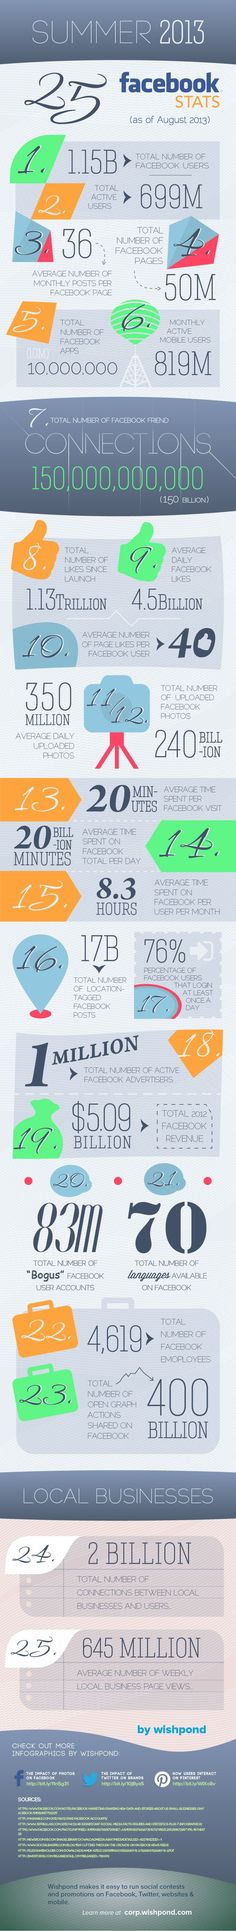 25 Facebook Stats, Summer 2013 - Infographic